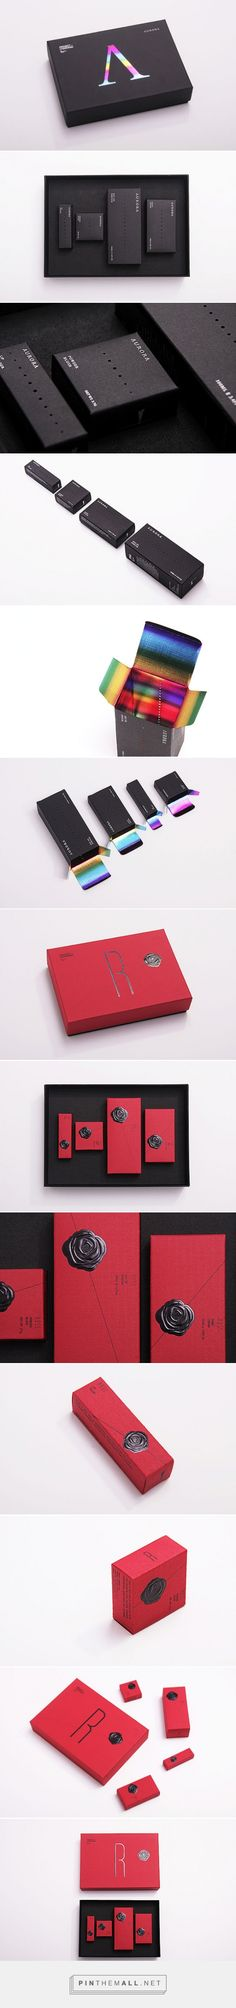 Aurora & Ross #packaging by BLOW - http://www.packagingoftheworld.com/2014/12/aurora-ross.html